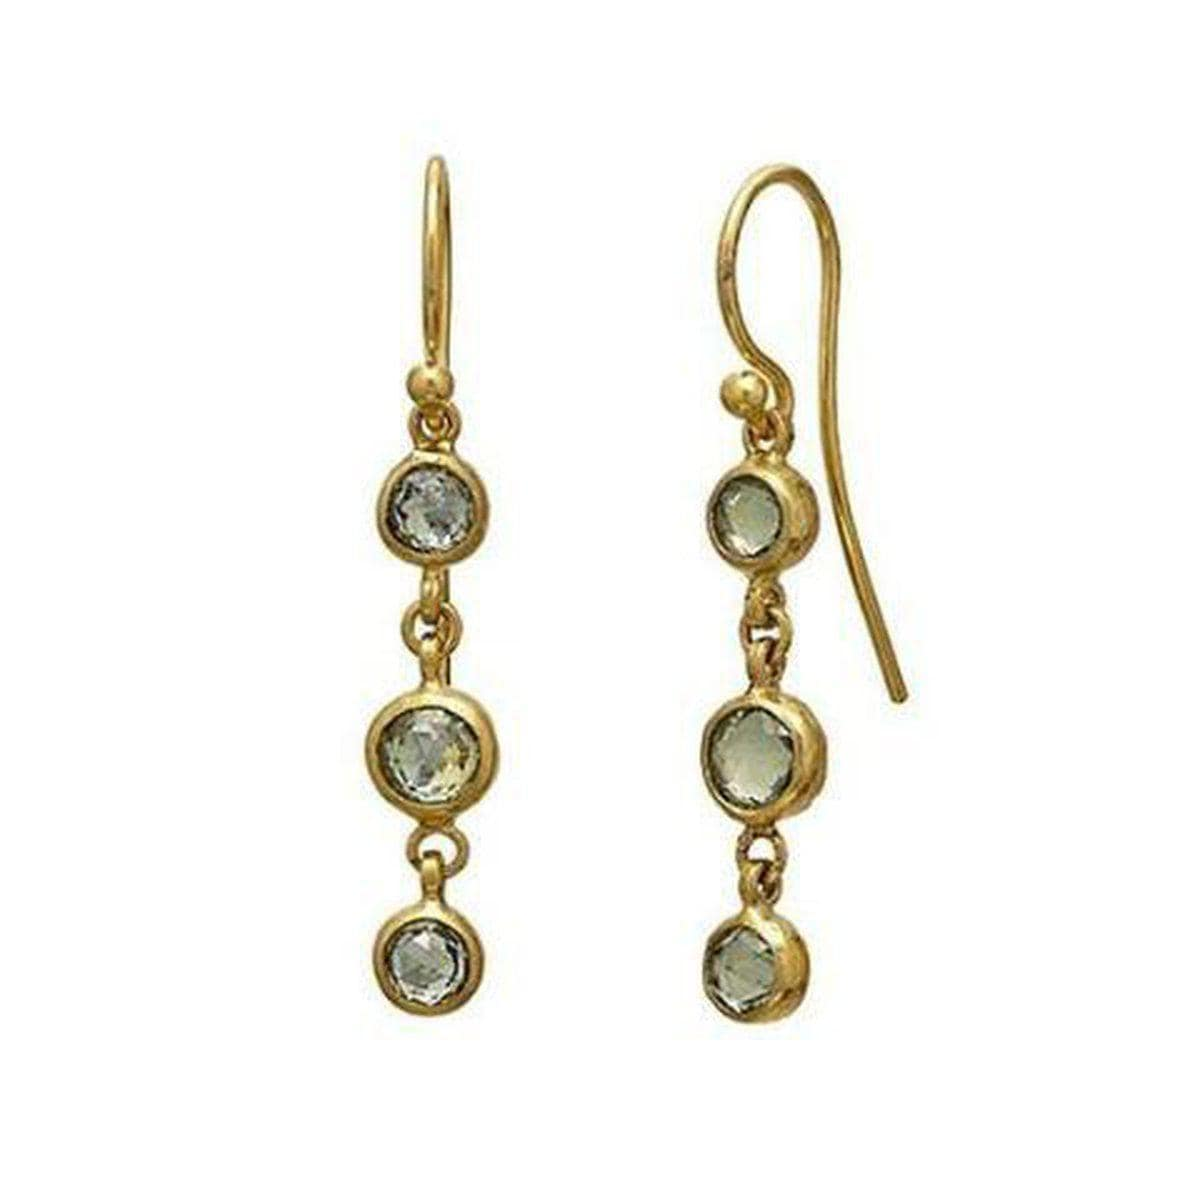 Elements 24K Gold Sapphire Earrings - E-U25266-FSA-GURHAN-Renee Taylor Gallery